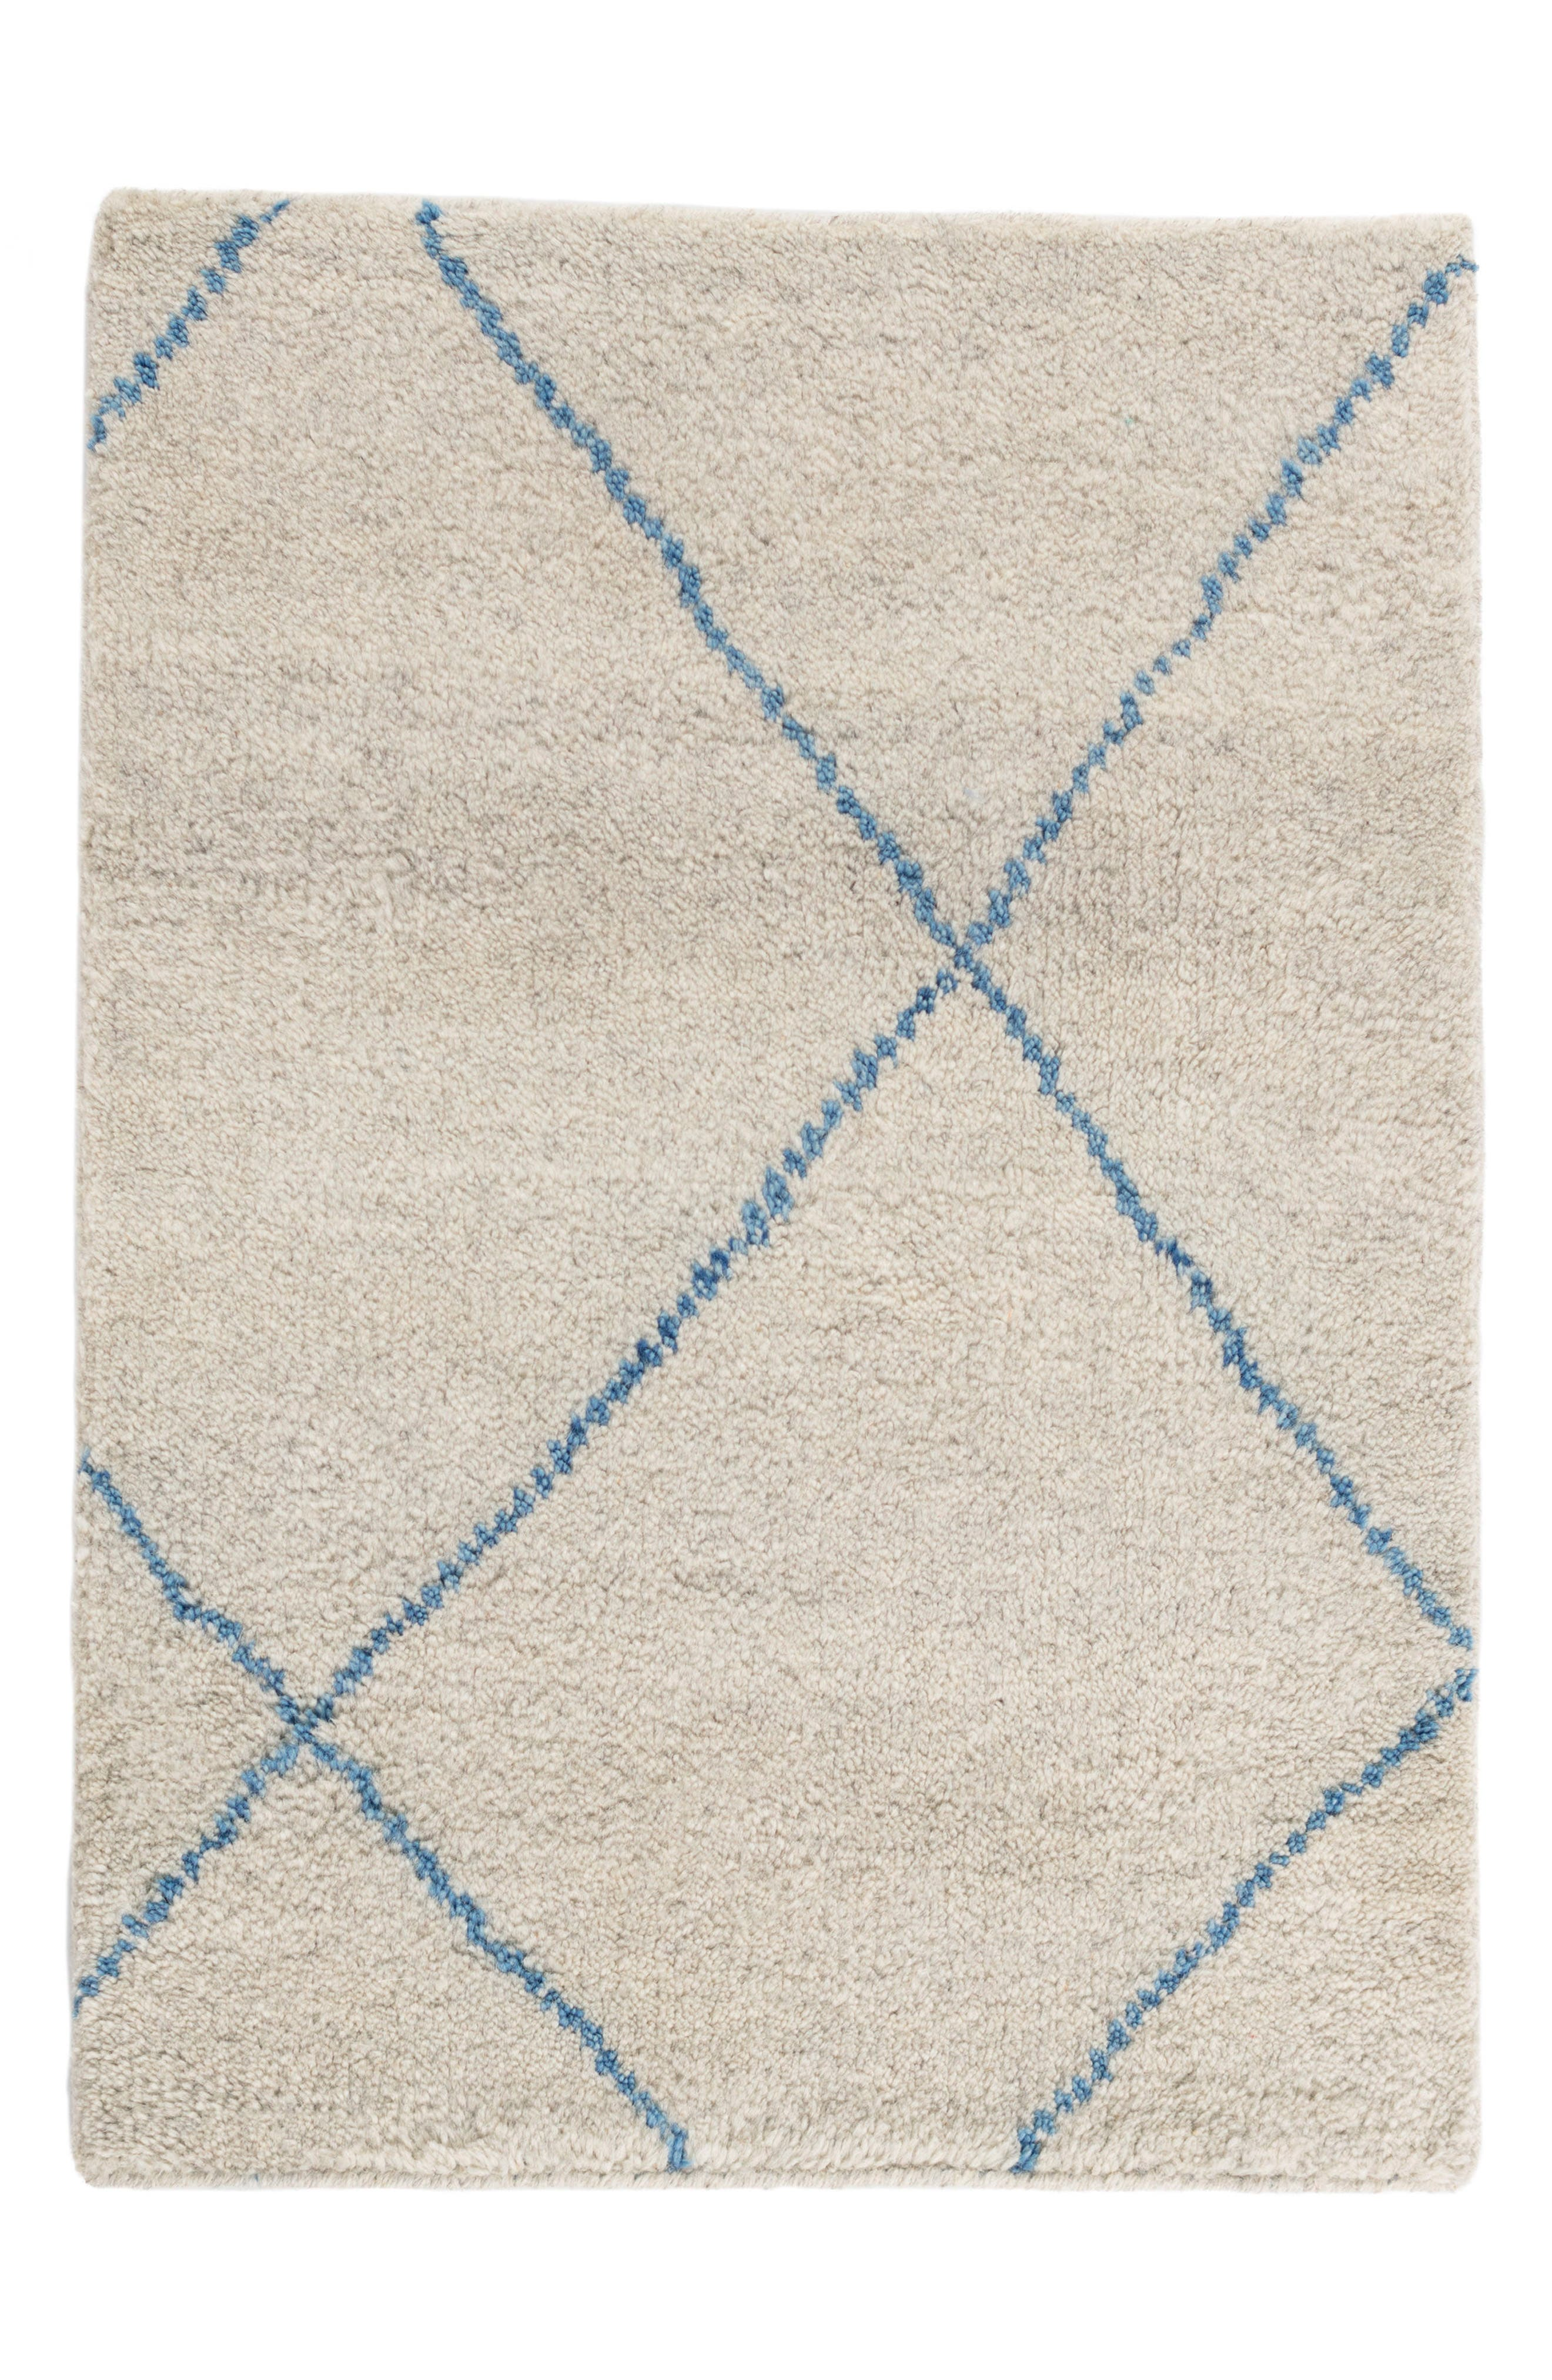 Numa Hand Knotted Wool-Blend Rug,                         Main,                         color, 400